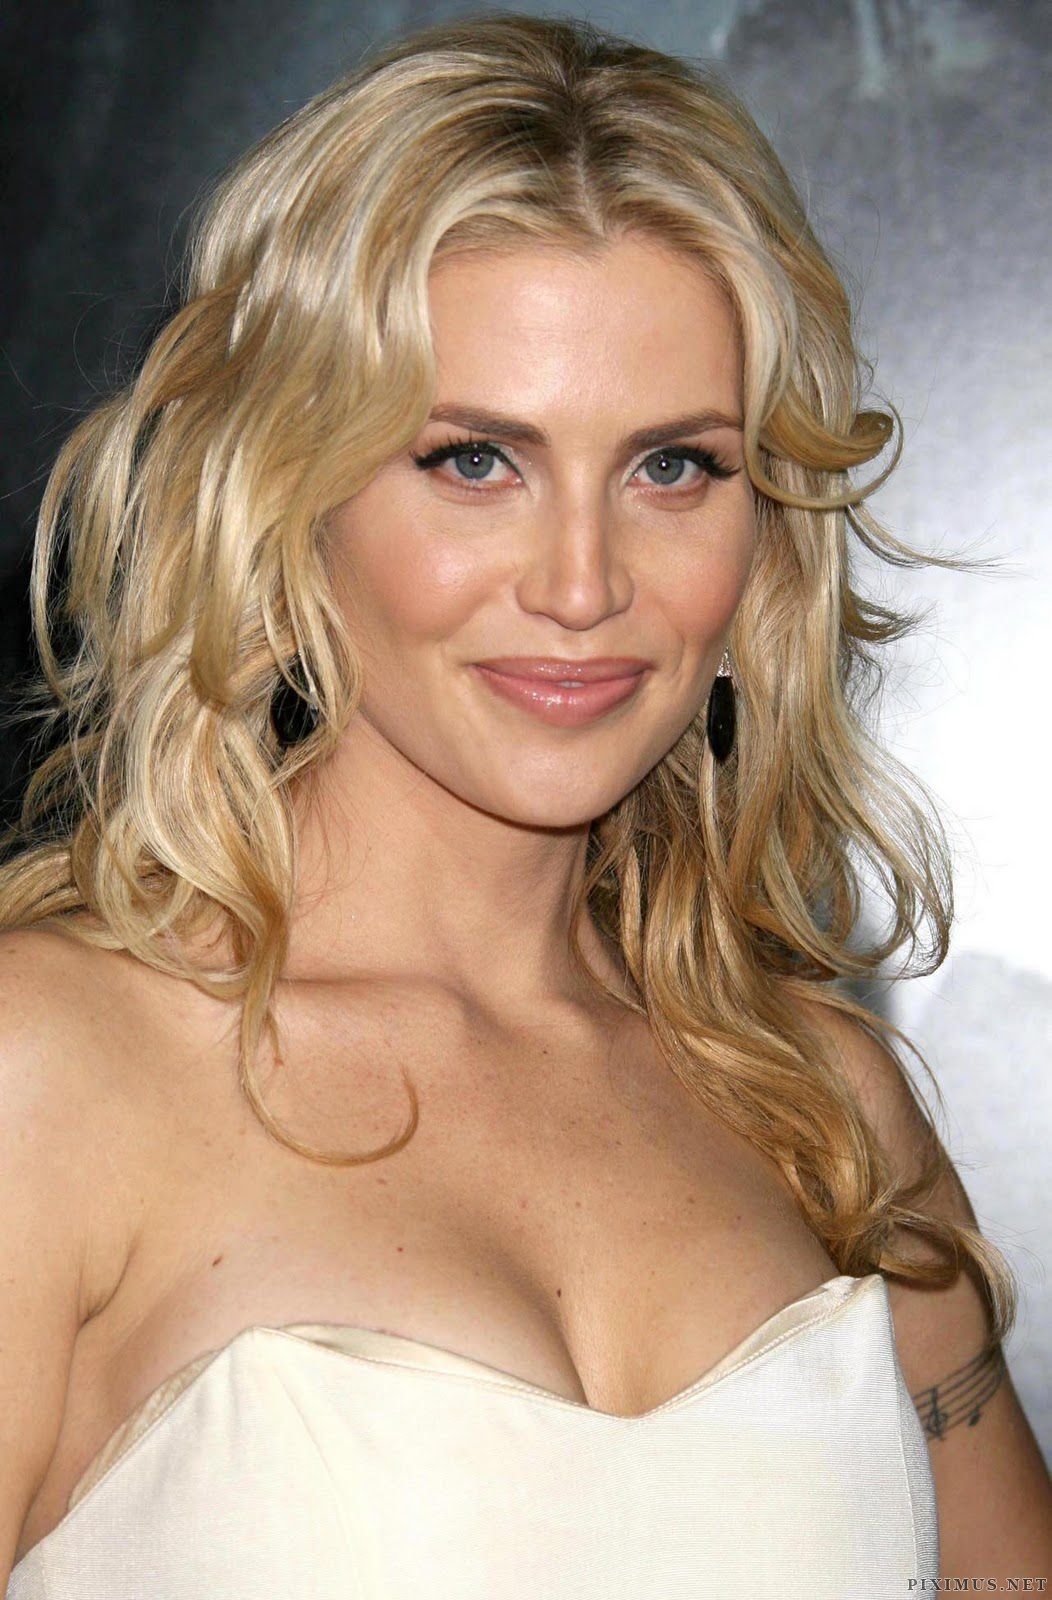 http://piximus.net/media/7947/blonde-beauty-willa-ford-7.jpg